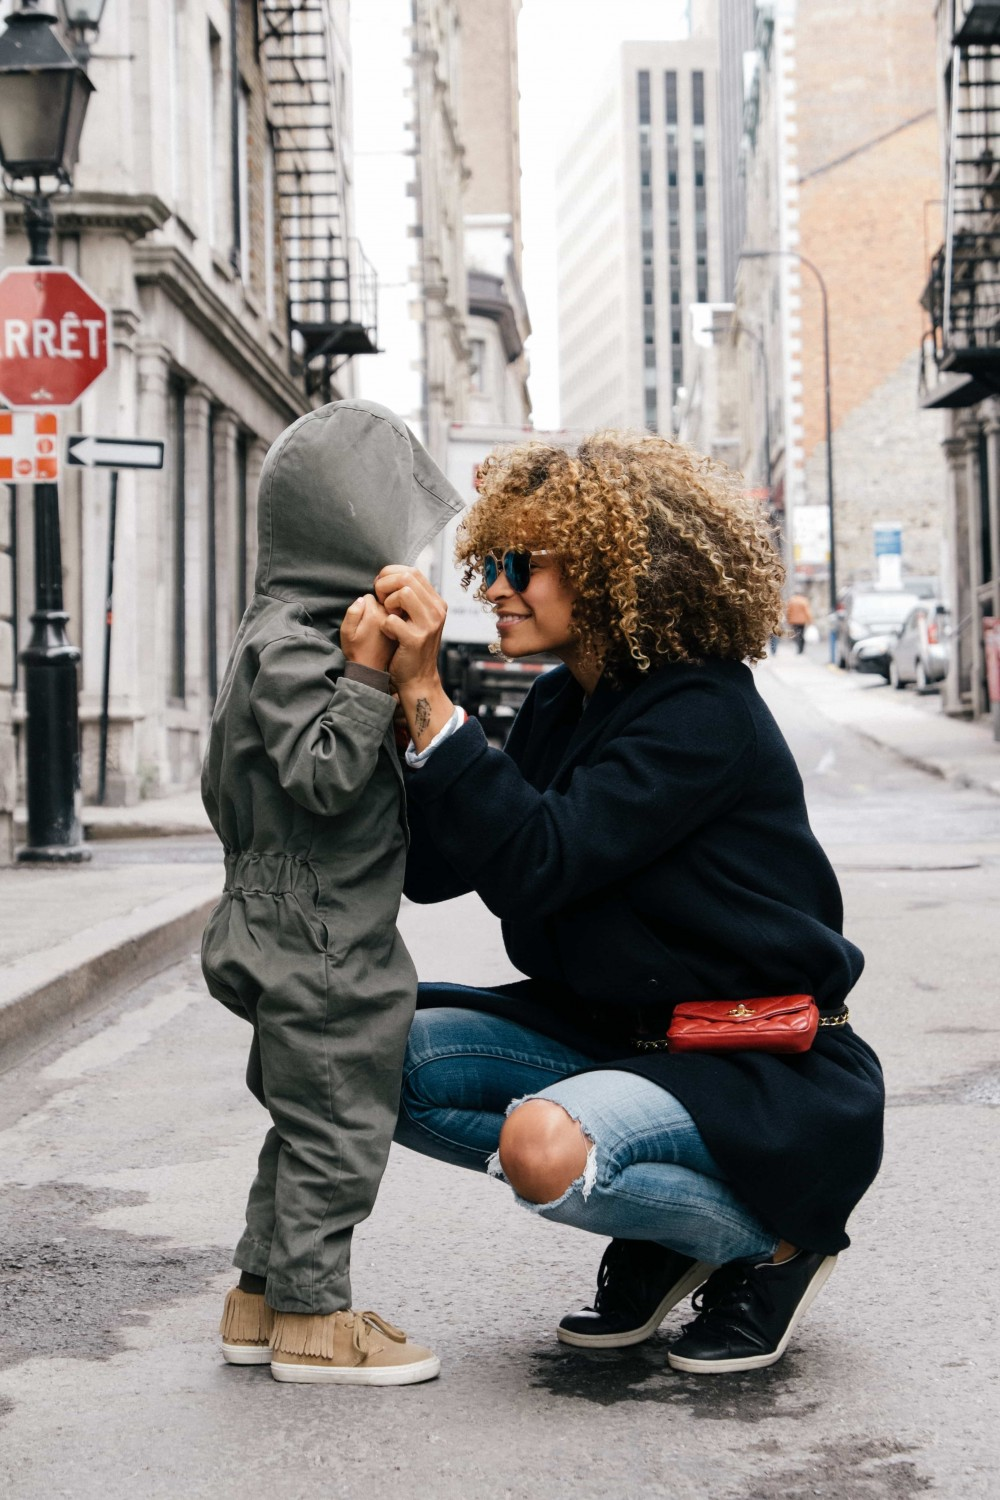 Au pair and child in the street